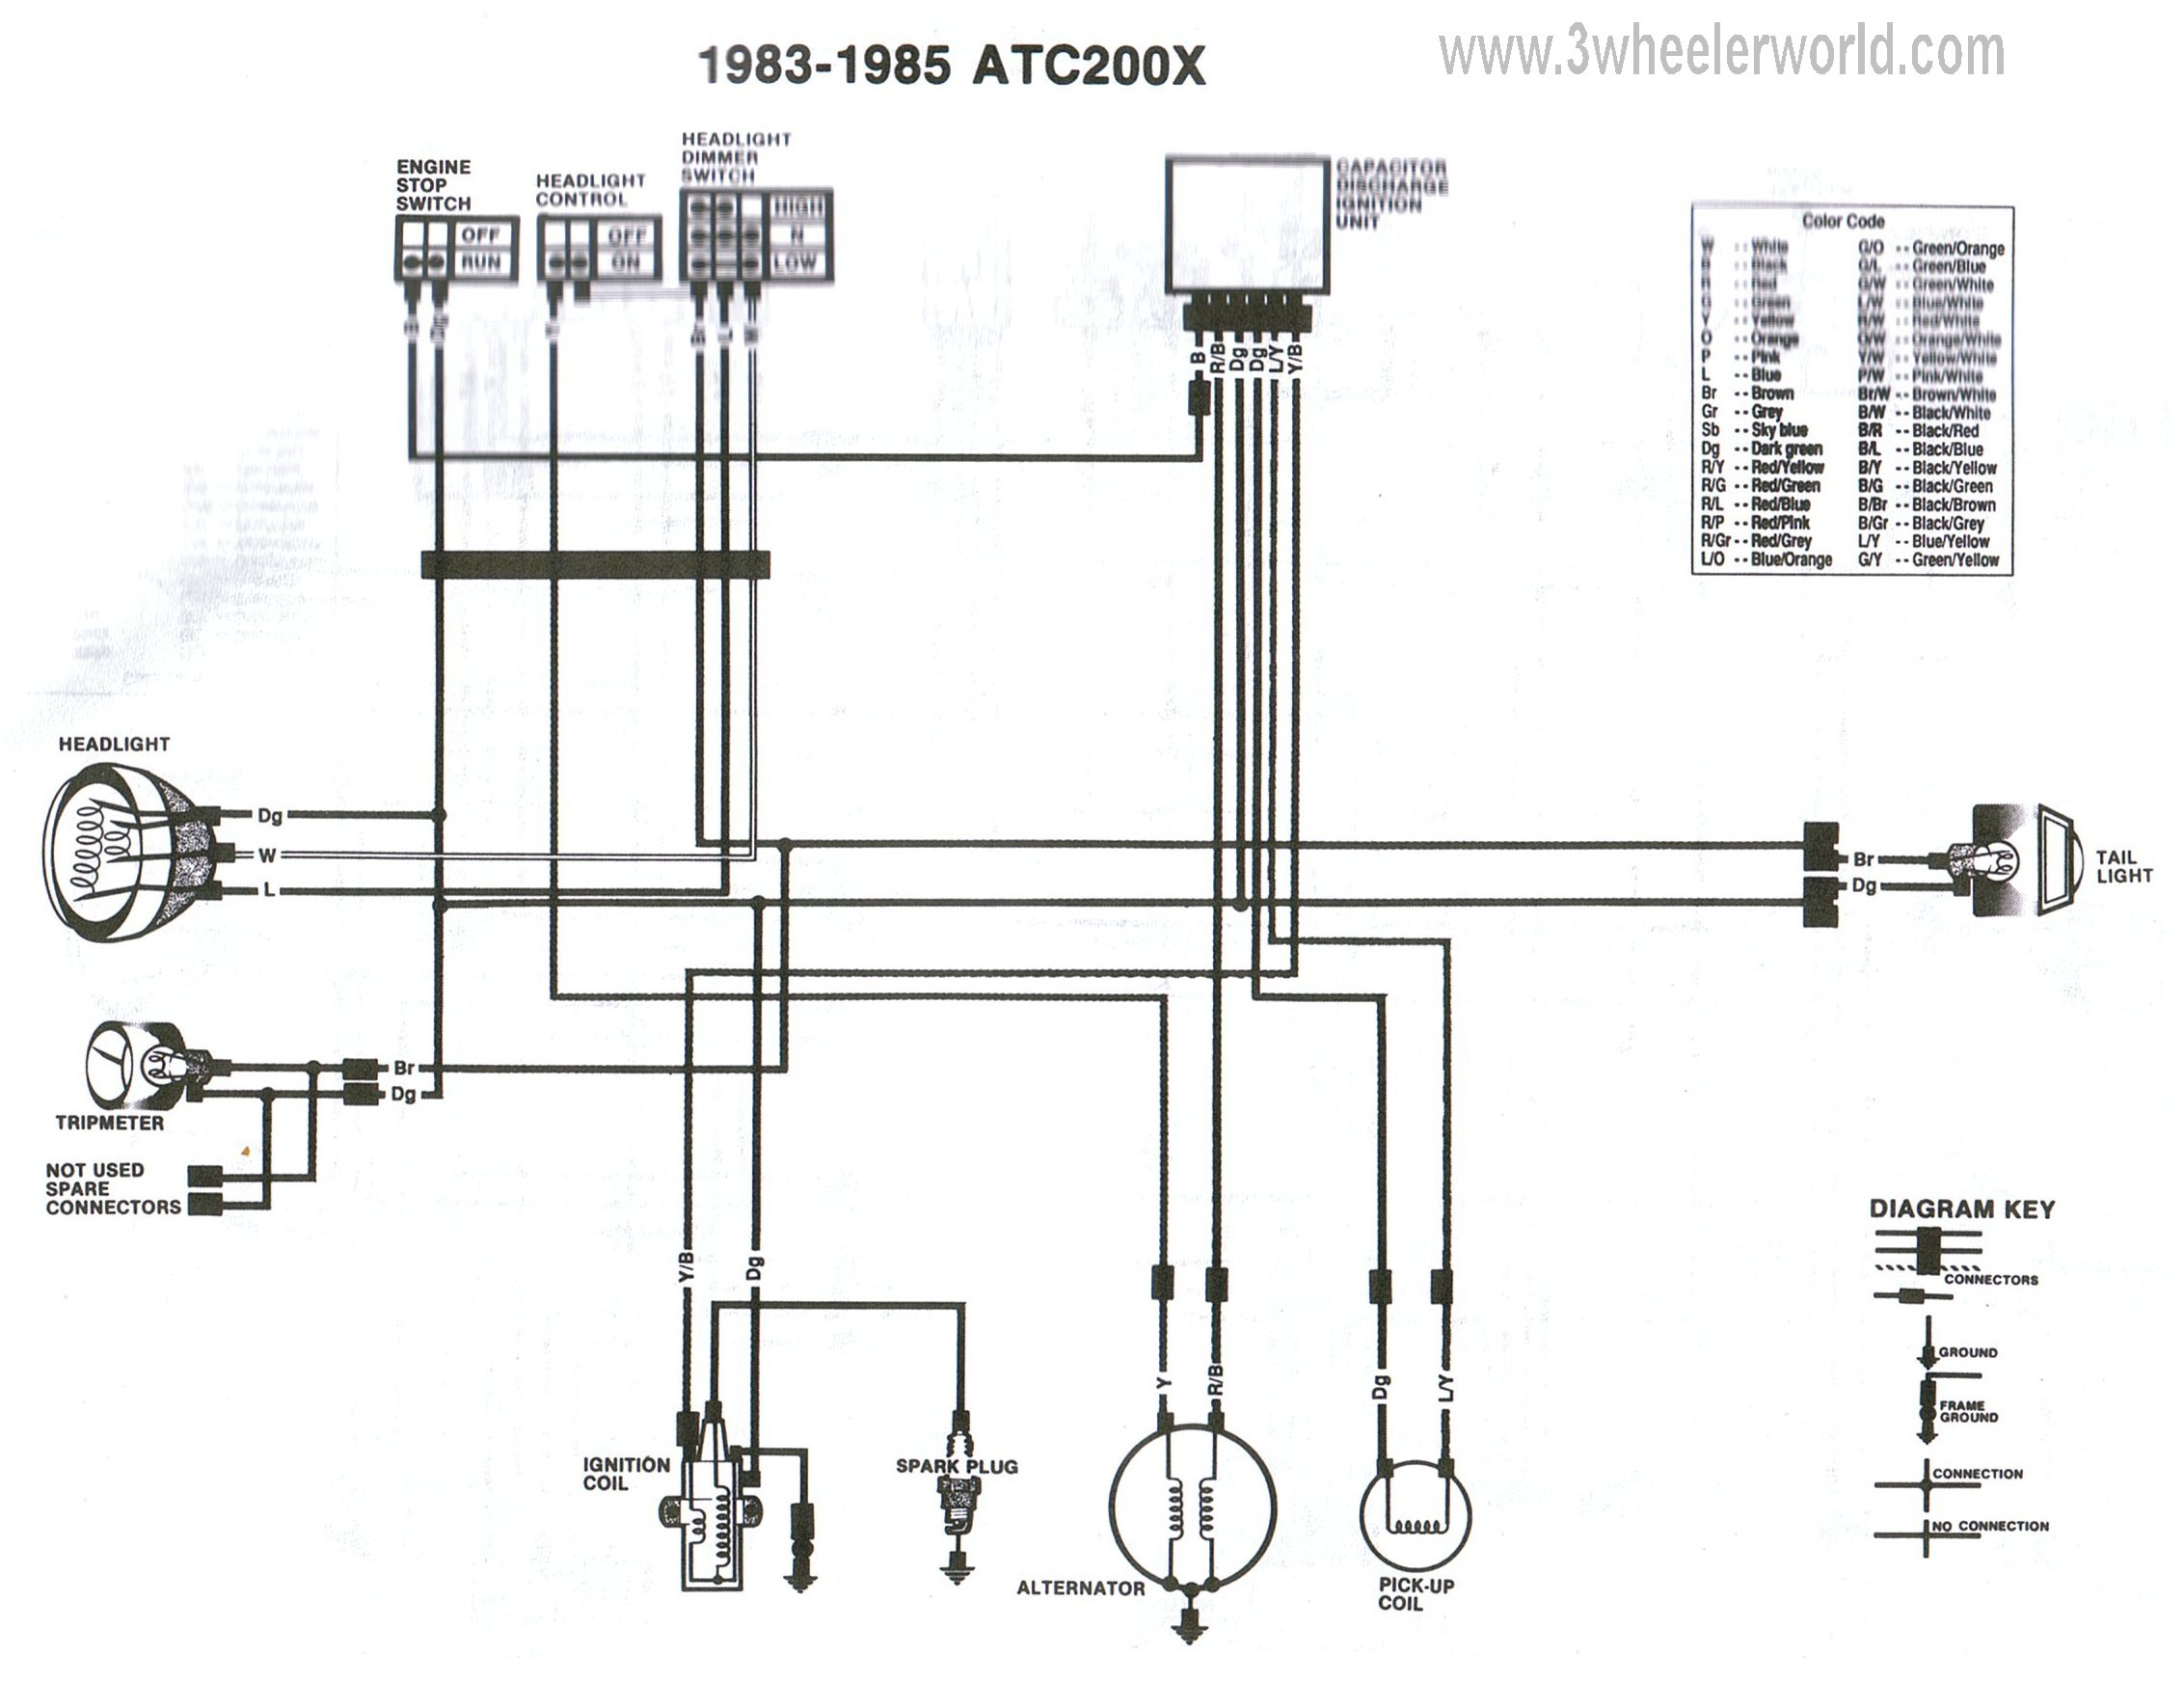 ATC200Xx83Thru85 3 wheeler world tech help honda wiring diagrams bajaj 4 stroke three wheeler wiring diagram at arjmand.co